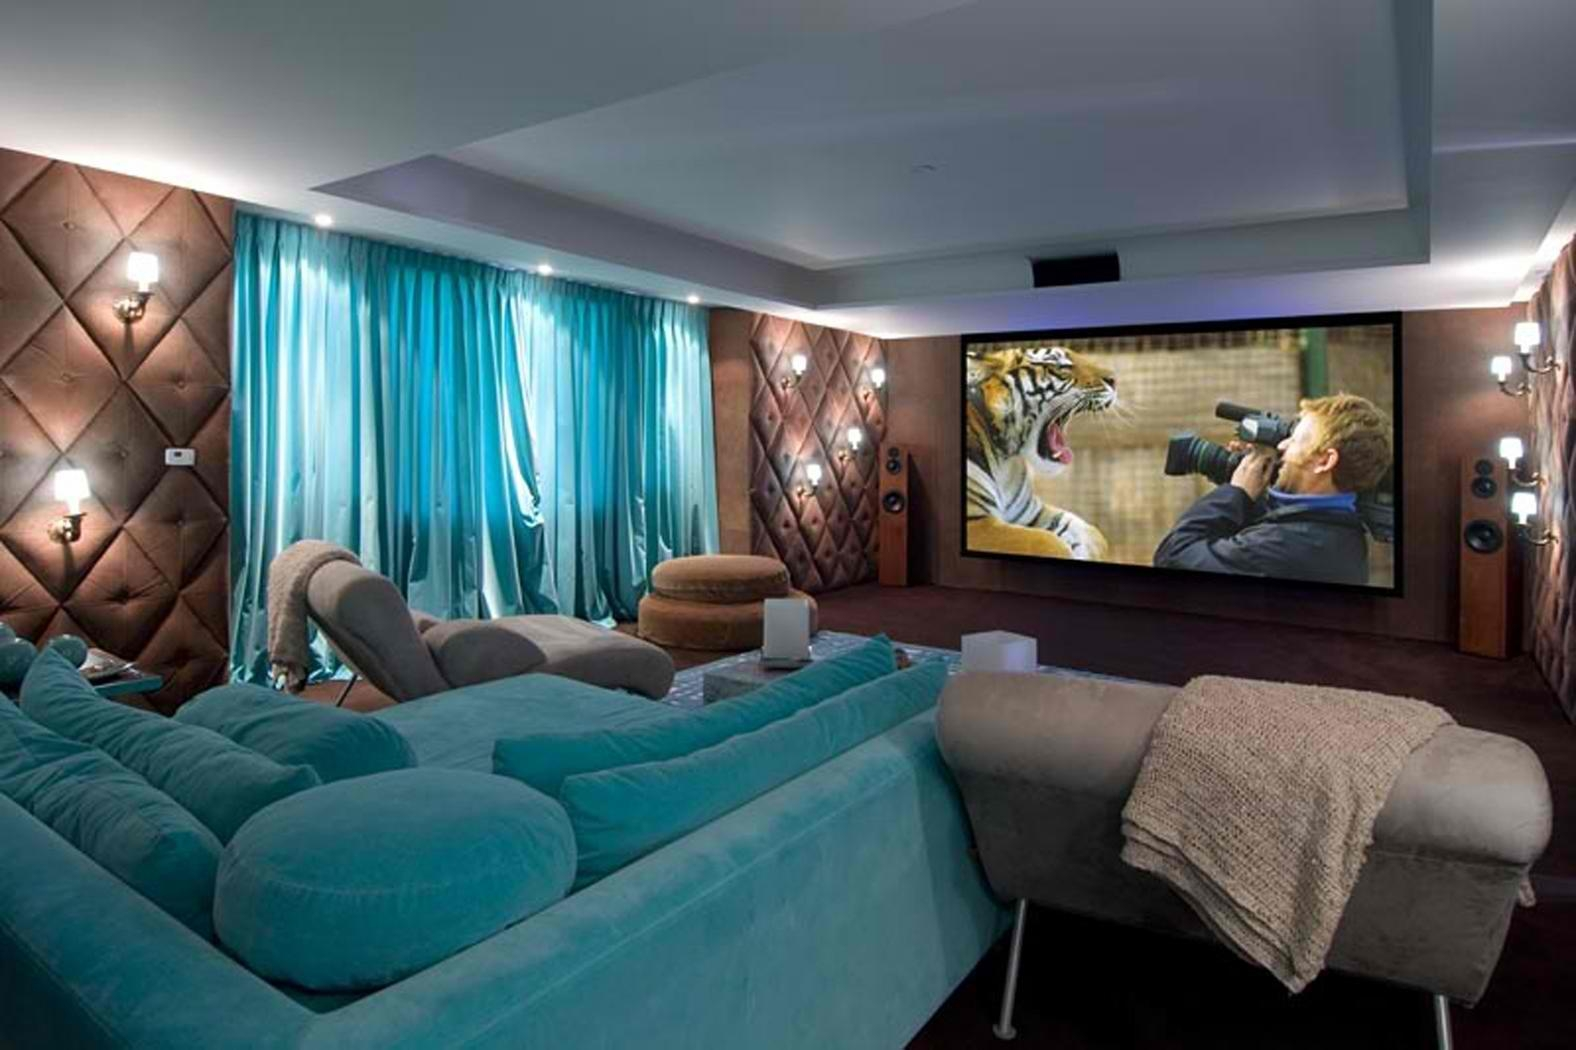 Luxury 25 Home Theater Couch Living Room Furniture On Sofa Home With Regard To Theater Room Sofas (Image 15 of 20)